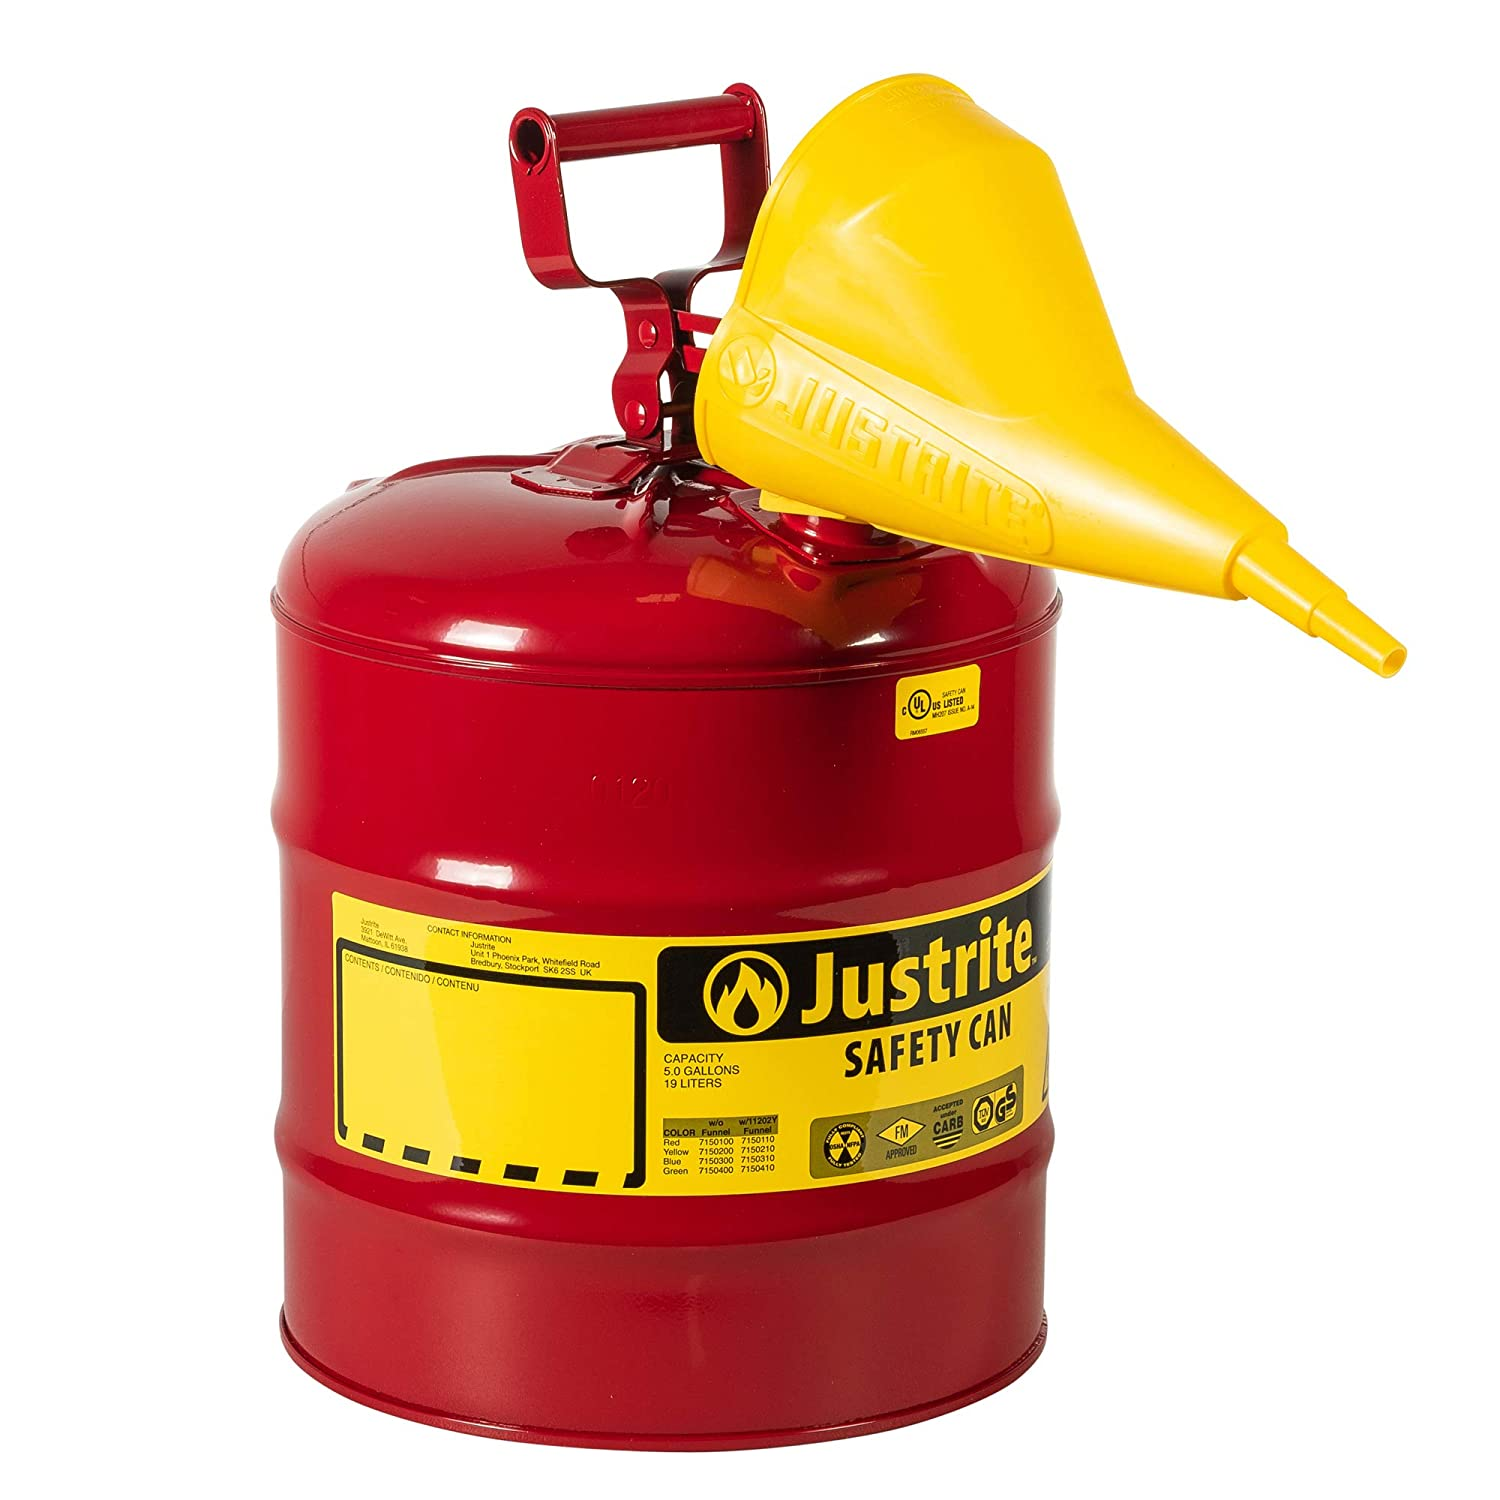 """Justrite 7150110 5 Gallon, 11.75"""" OD x 16.875"""" H Galvanized Steel Type I Red Safety Can With Funnel: Hazardous Storage Cans: Industrial & Scientific"""